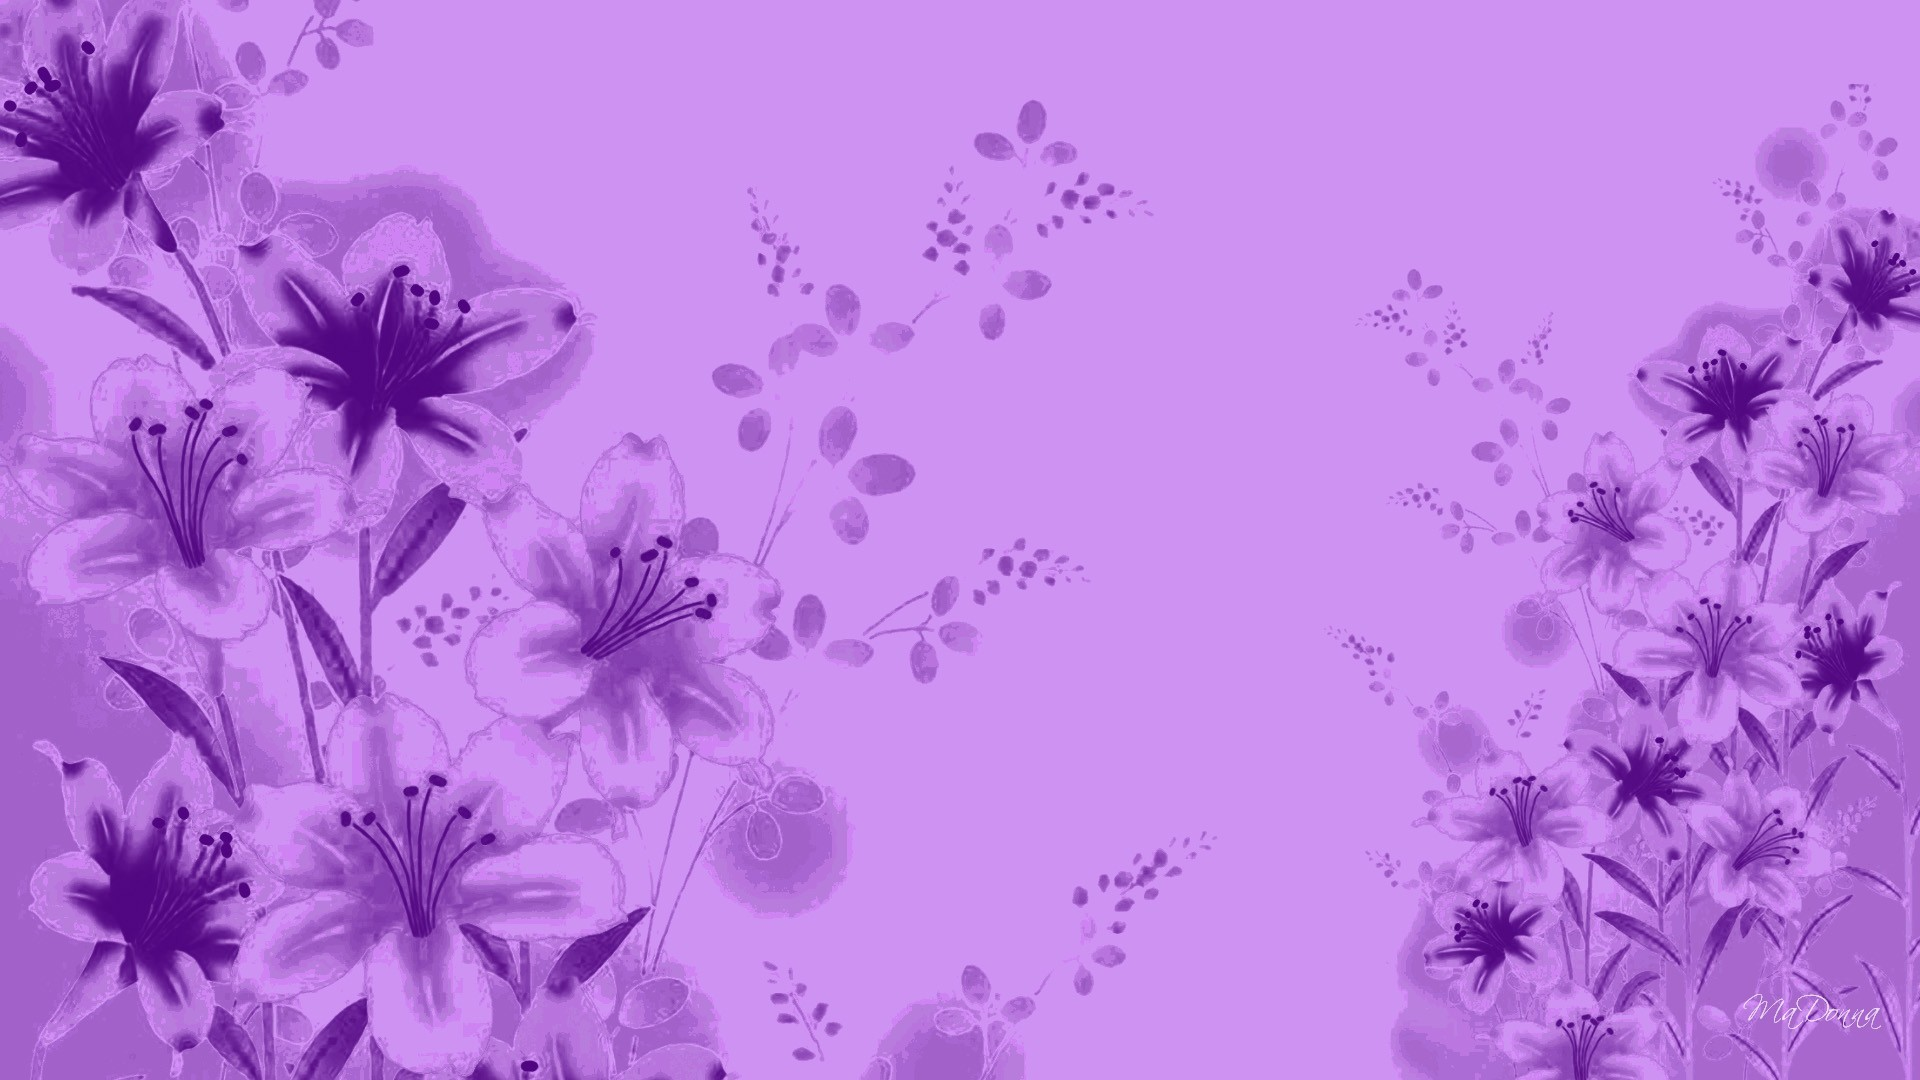 1920x1080 Lavender Colour Wallpaper - Wallpaper, High Definition, High Quality .